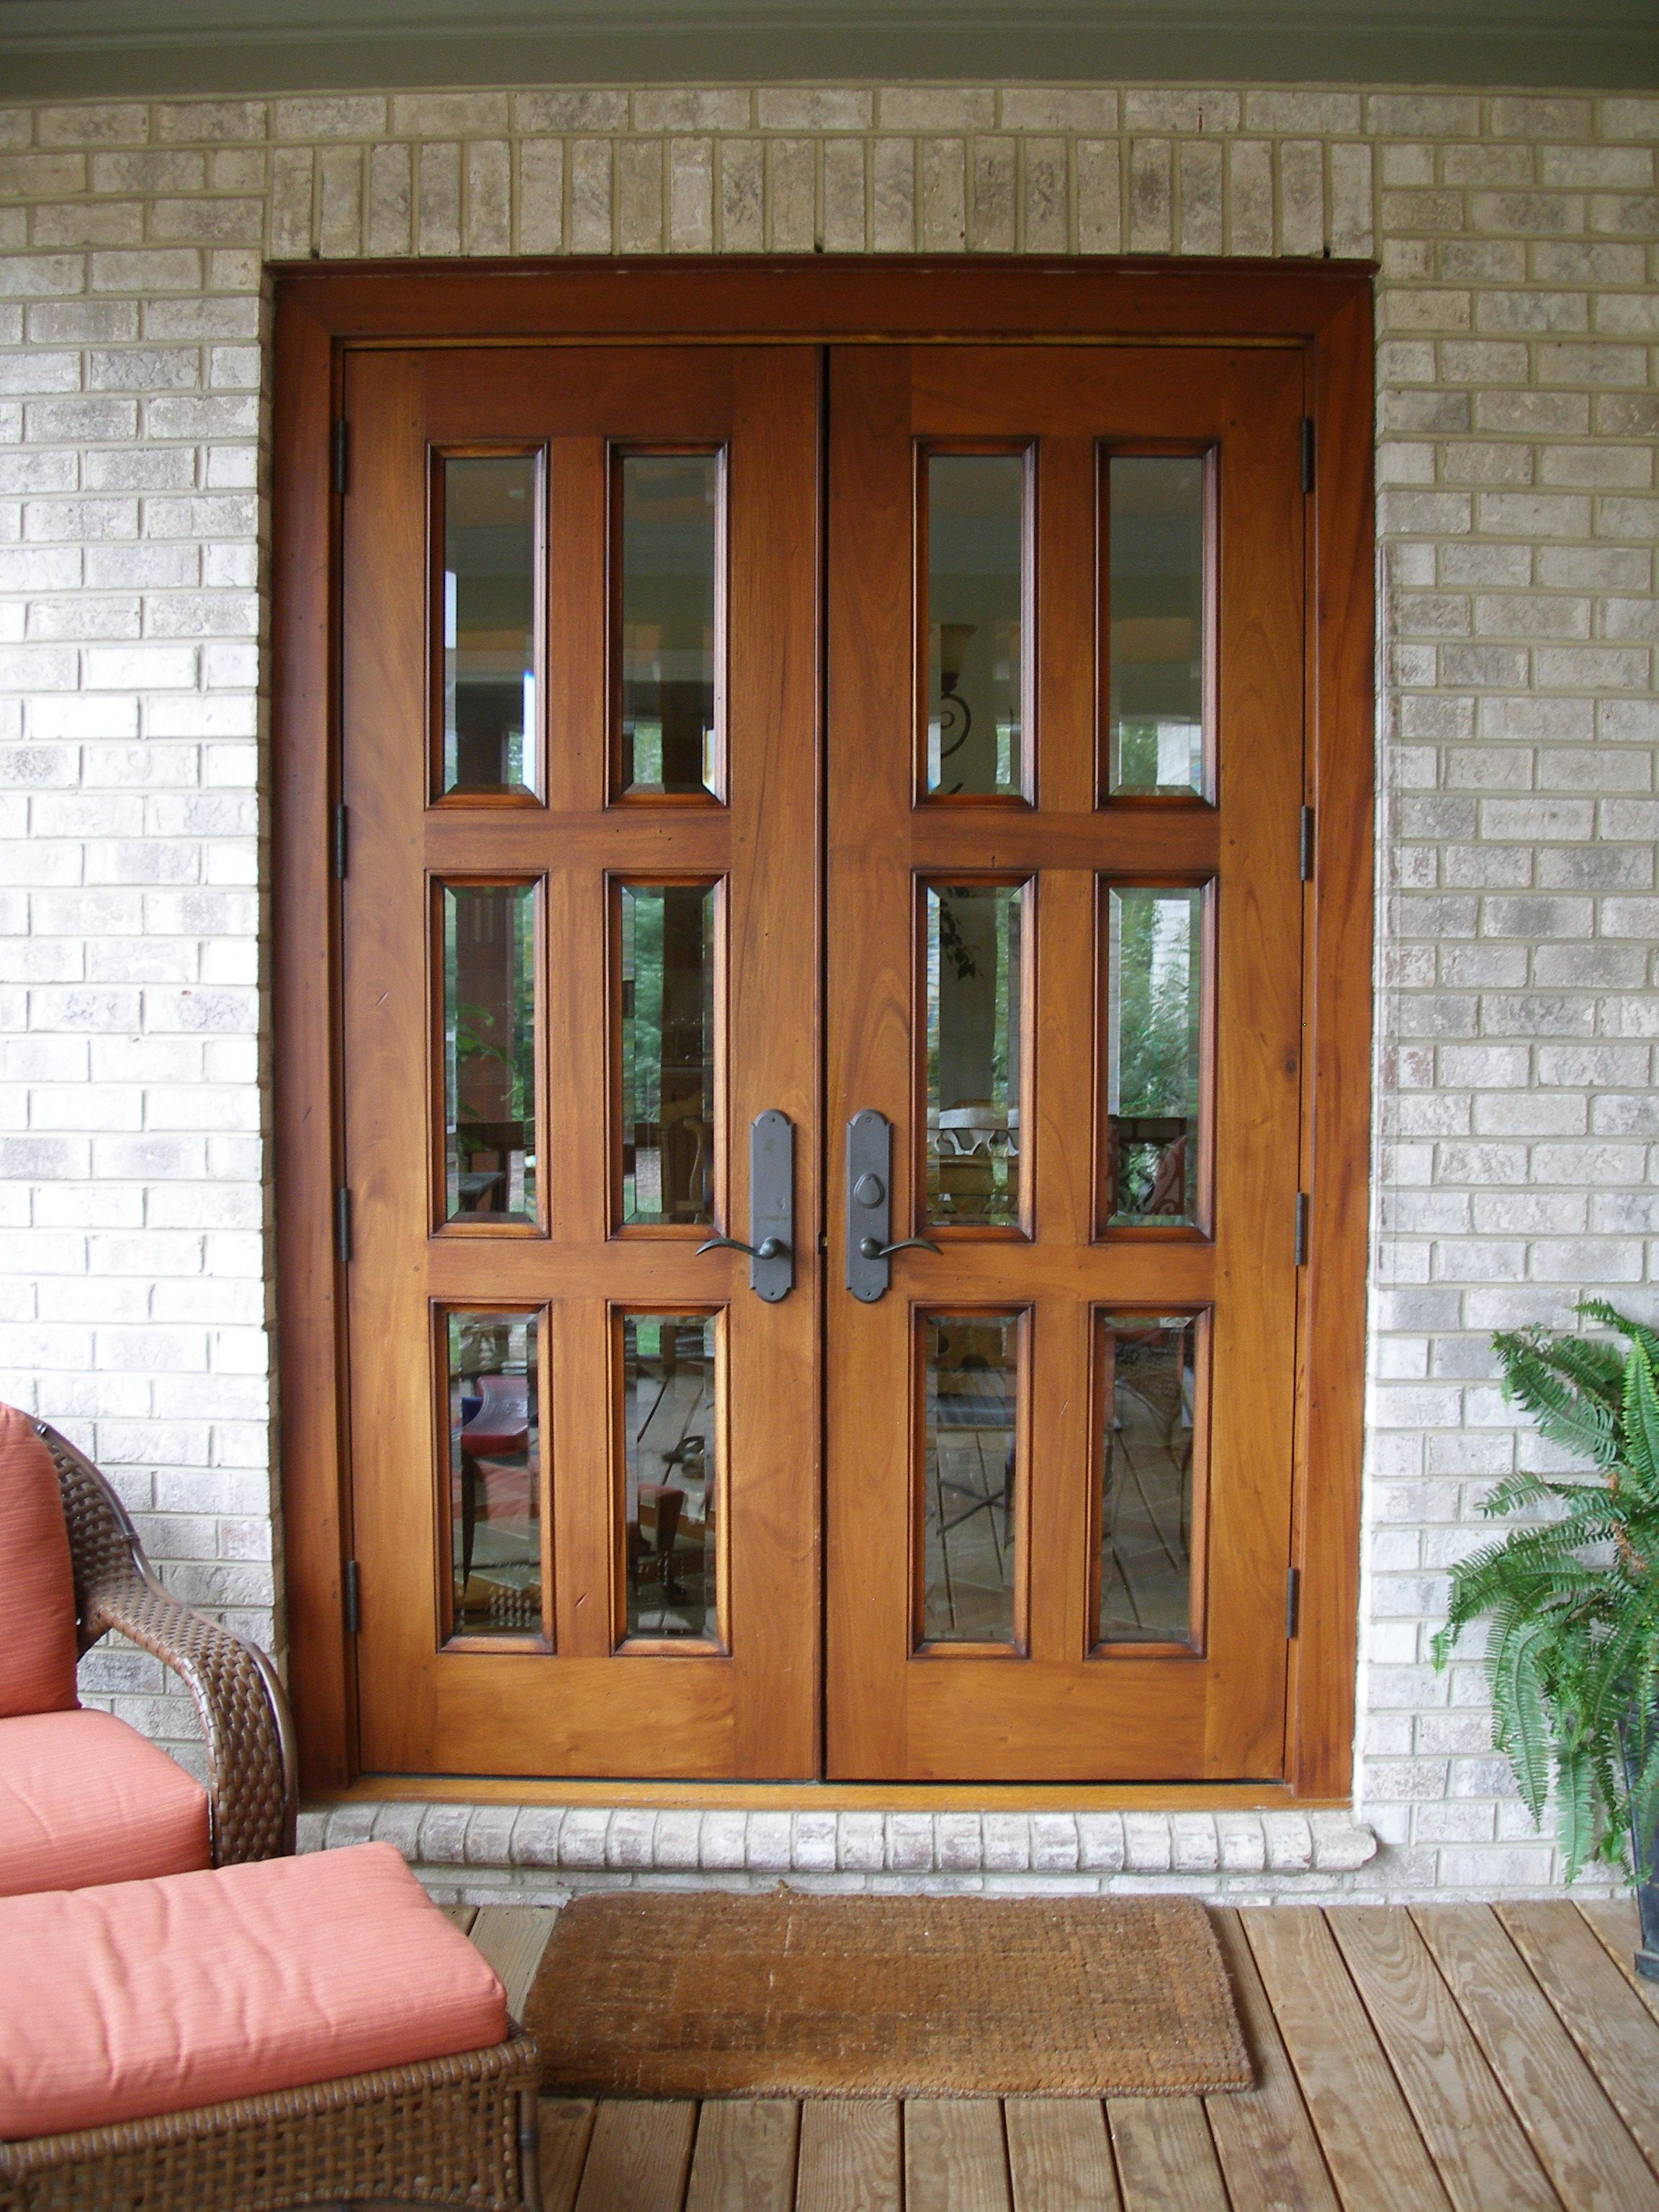 French Exterior Doors Steel: 1-clean-wood-french-doors-exterior-lowes-vinyl-vs-wood